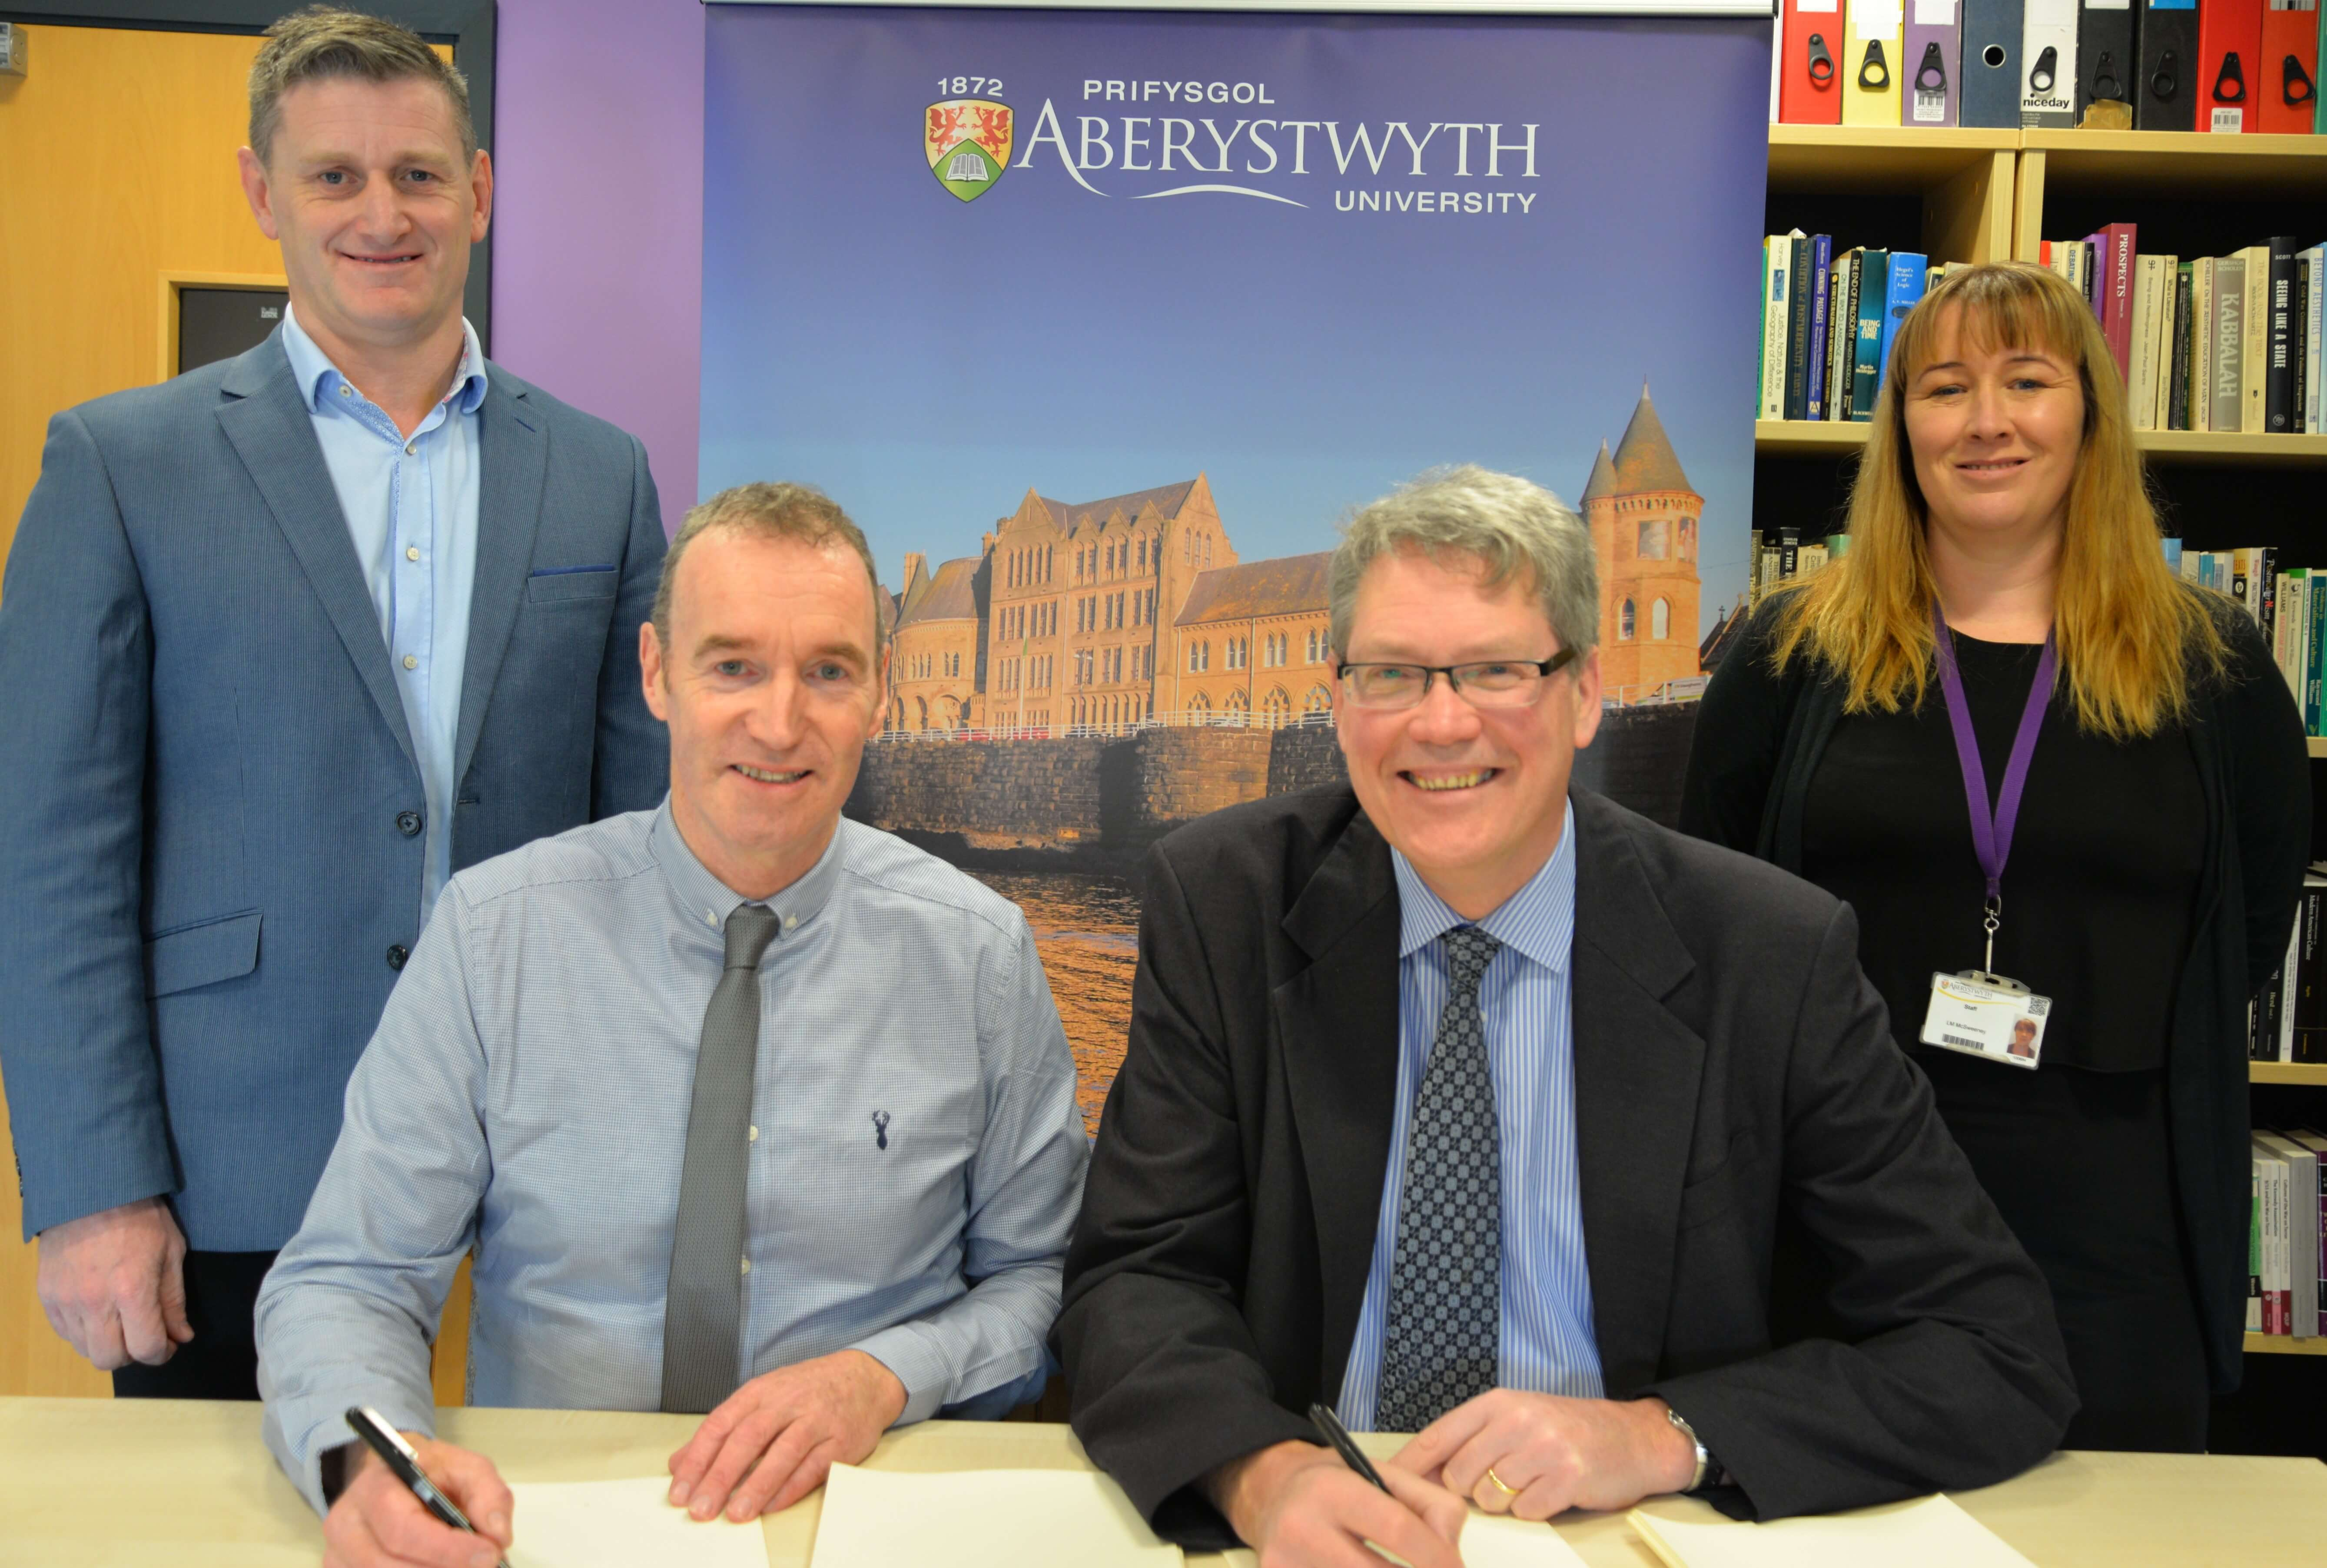 From left to right: Dr Wyn Morris, Alun Jones, Professor Tim Woods and Laura McSweeney signing the new contract